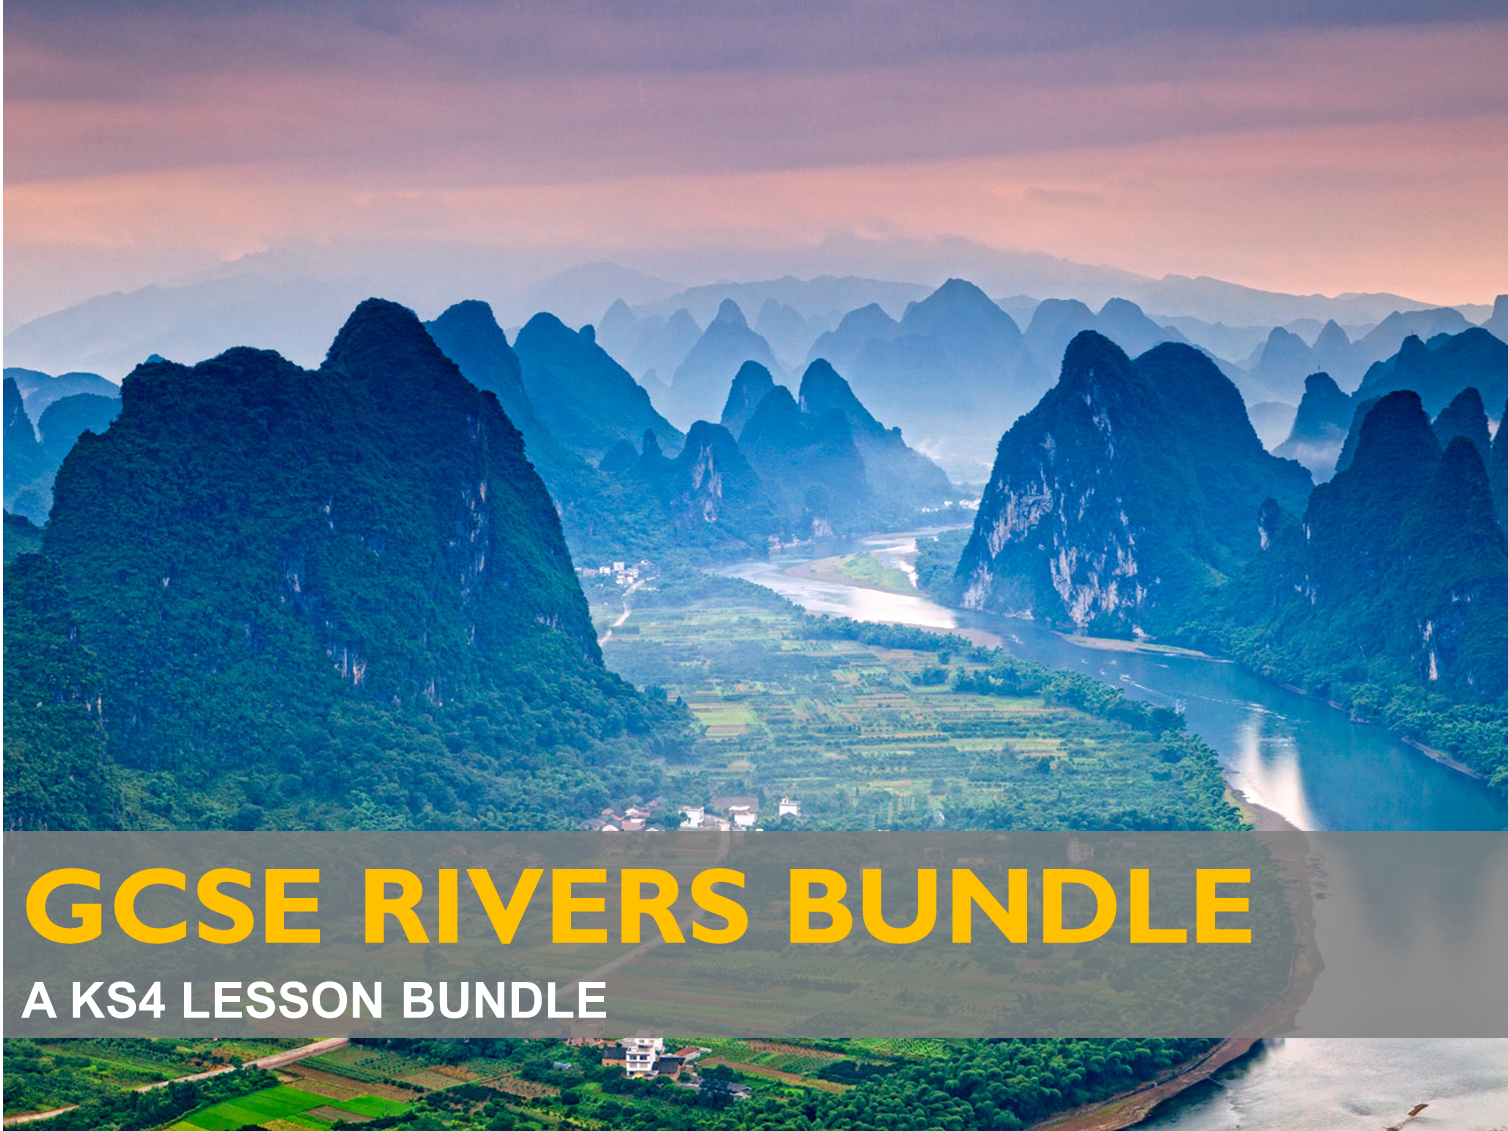 GCSE Rivers Bundle